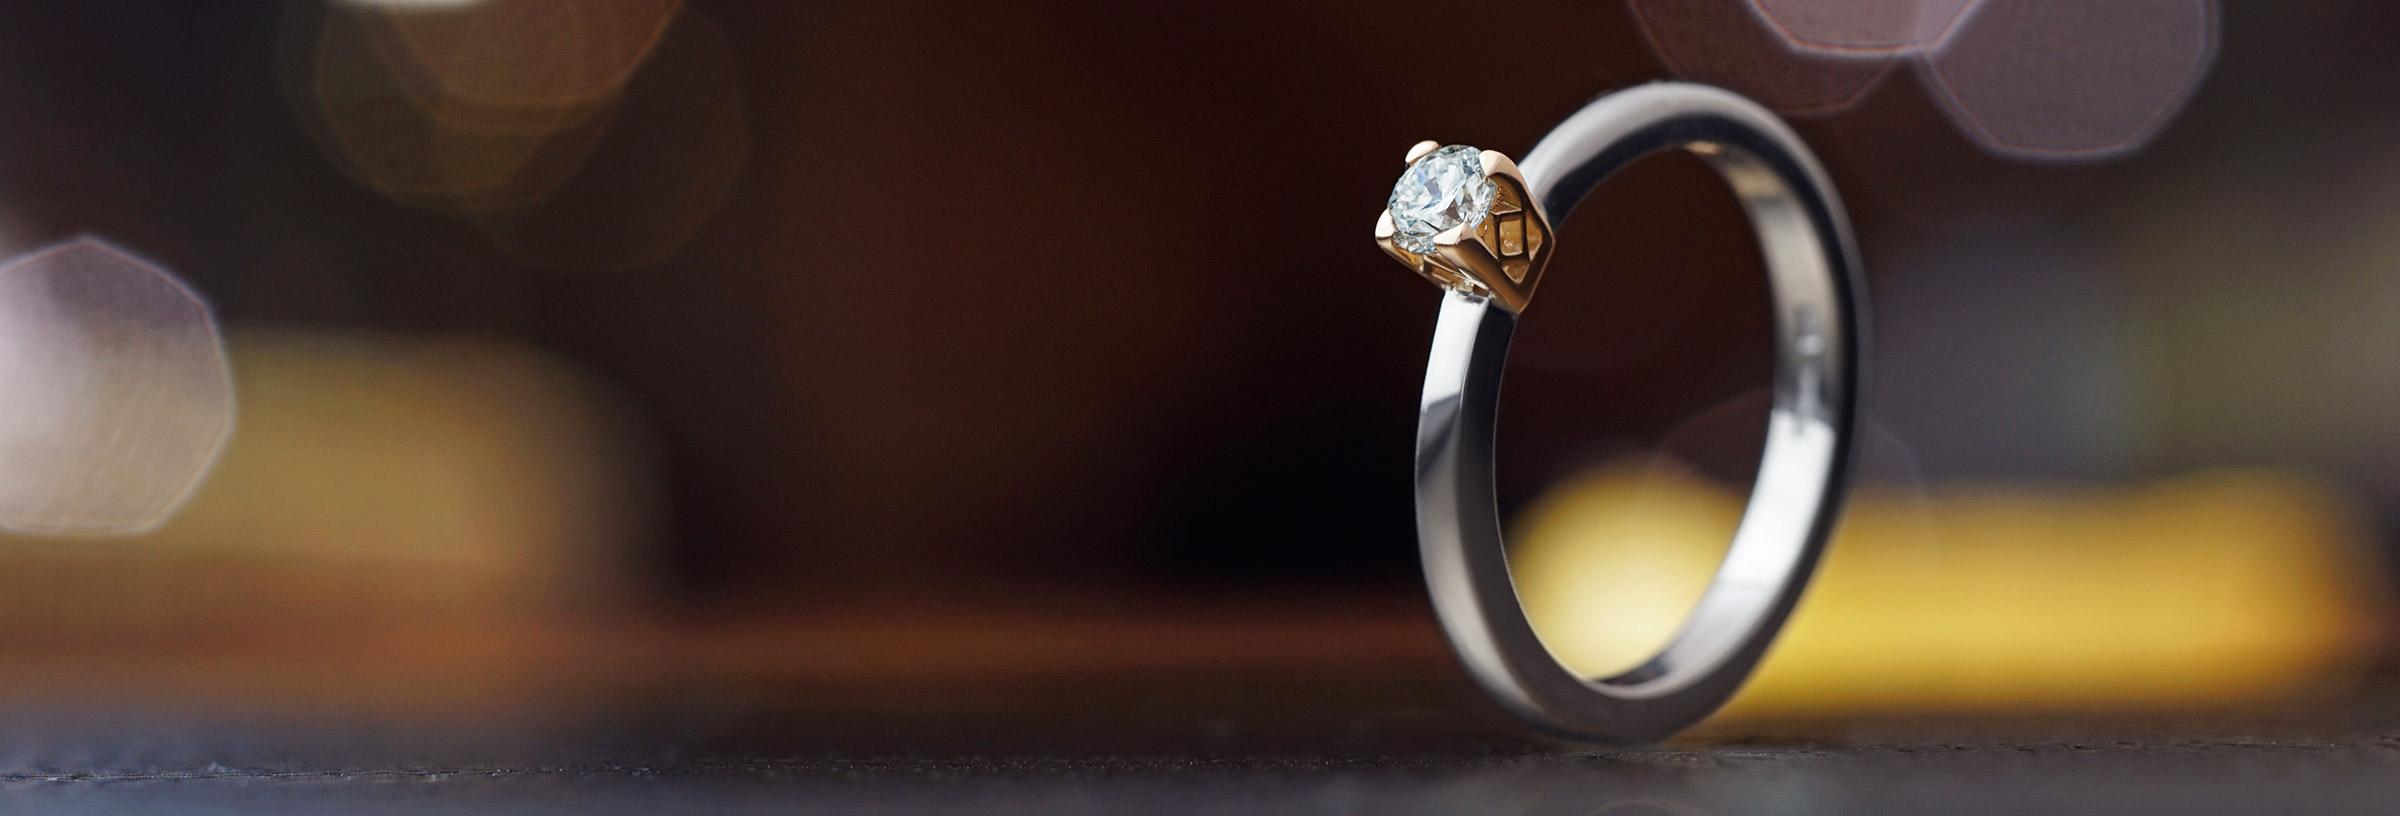 Art deco style 18ct rose and white gold diamond solitaire